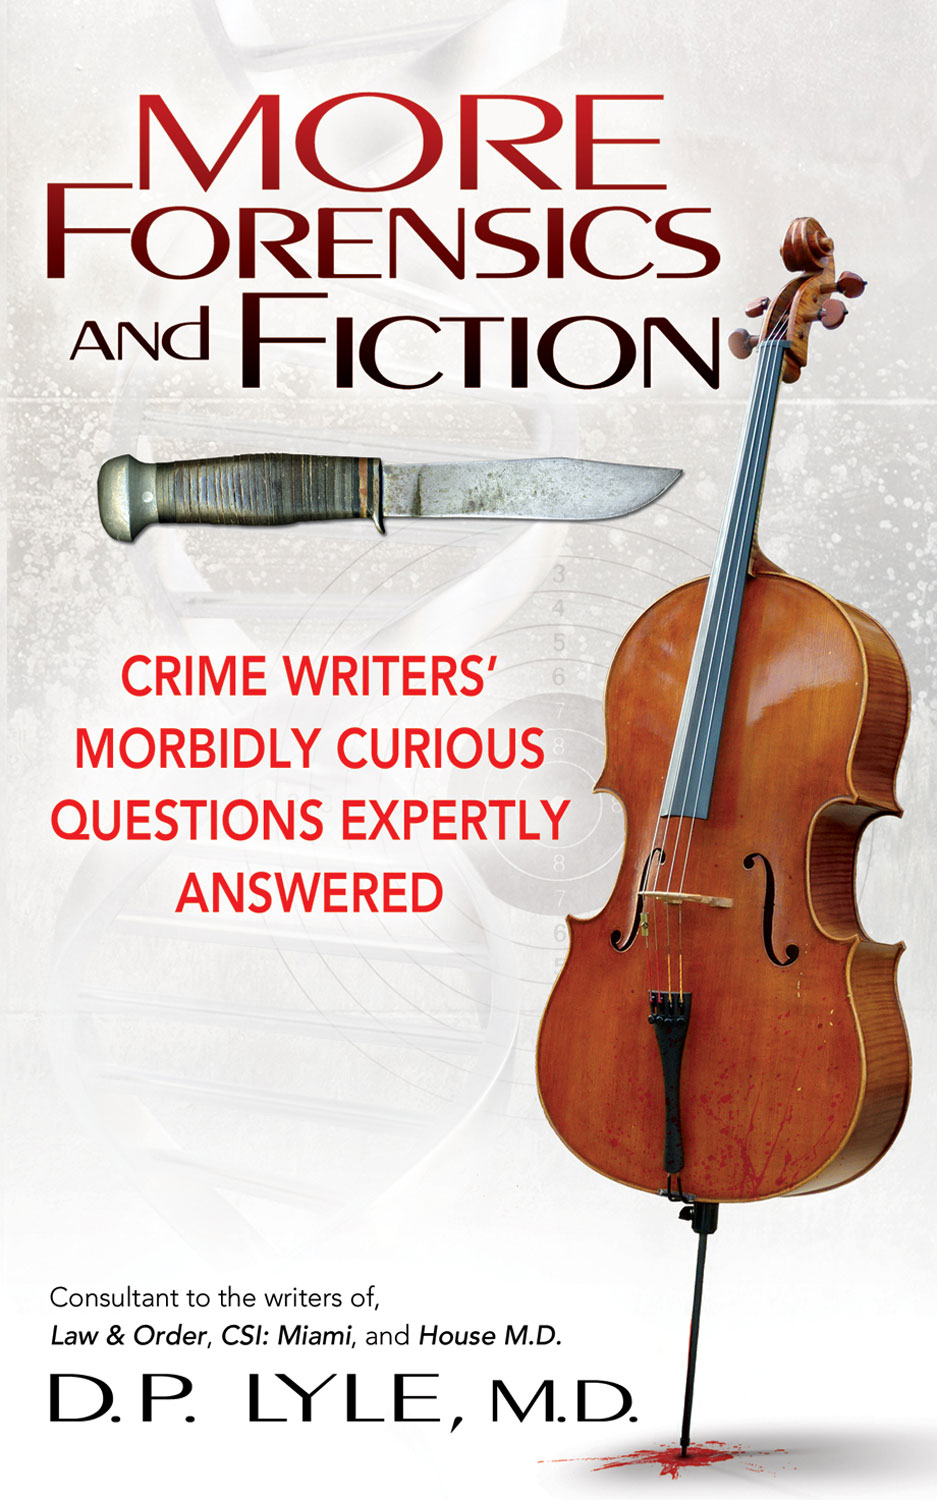 More Forensics and Fiction